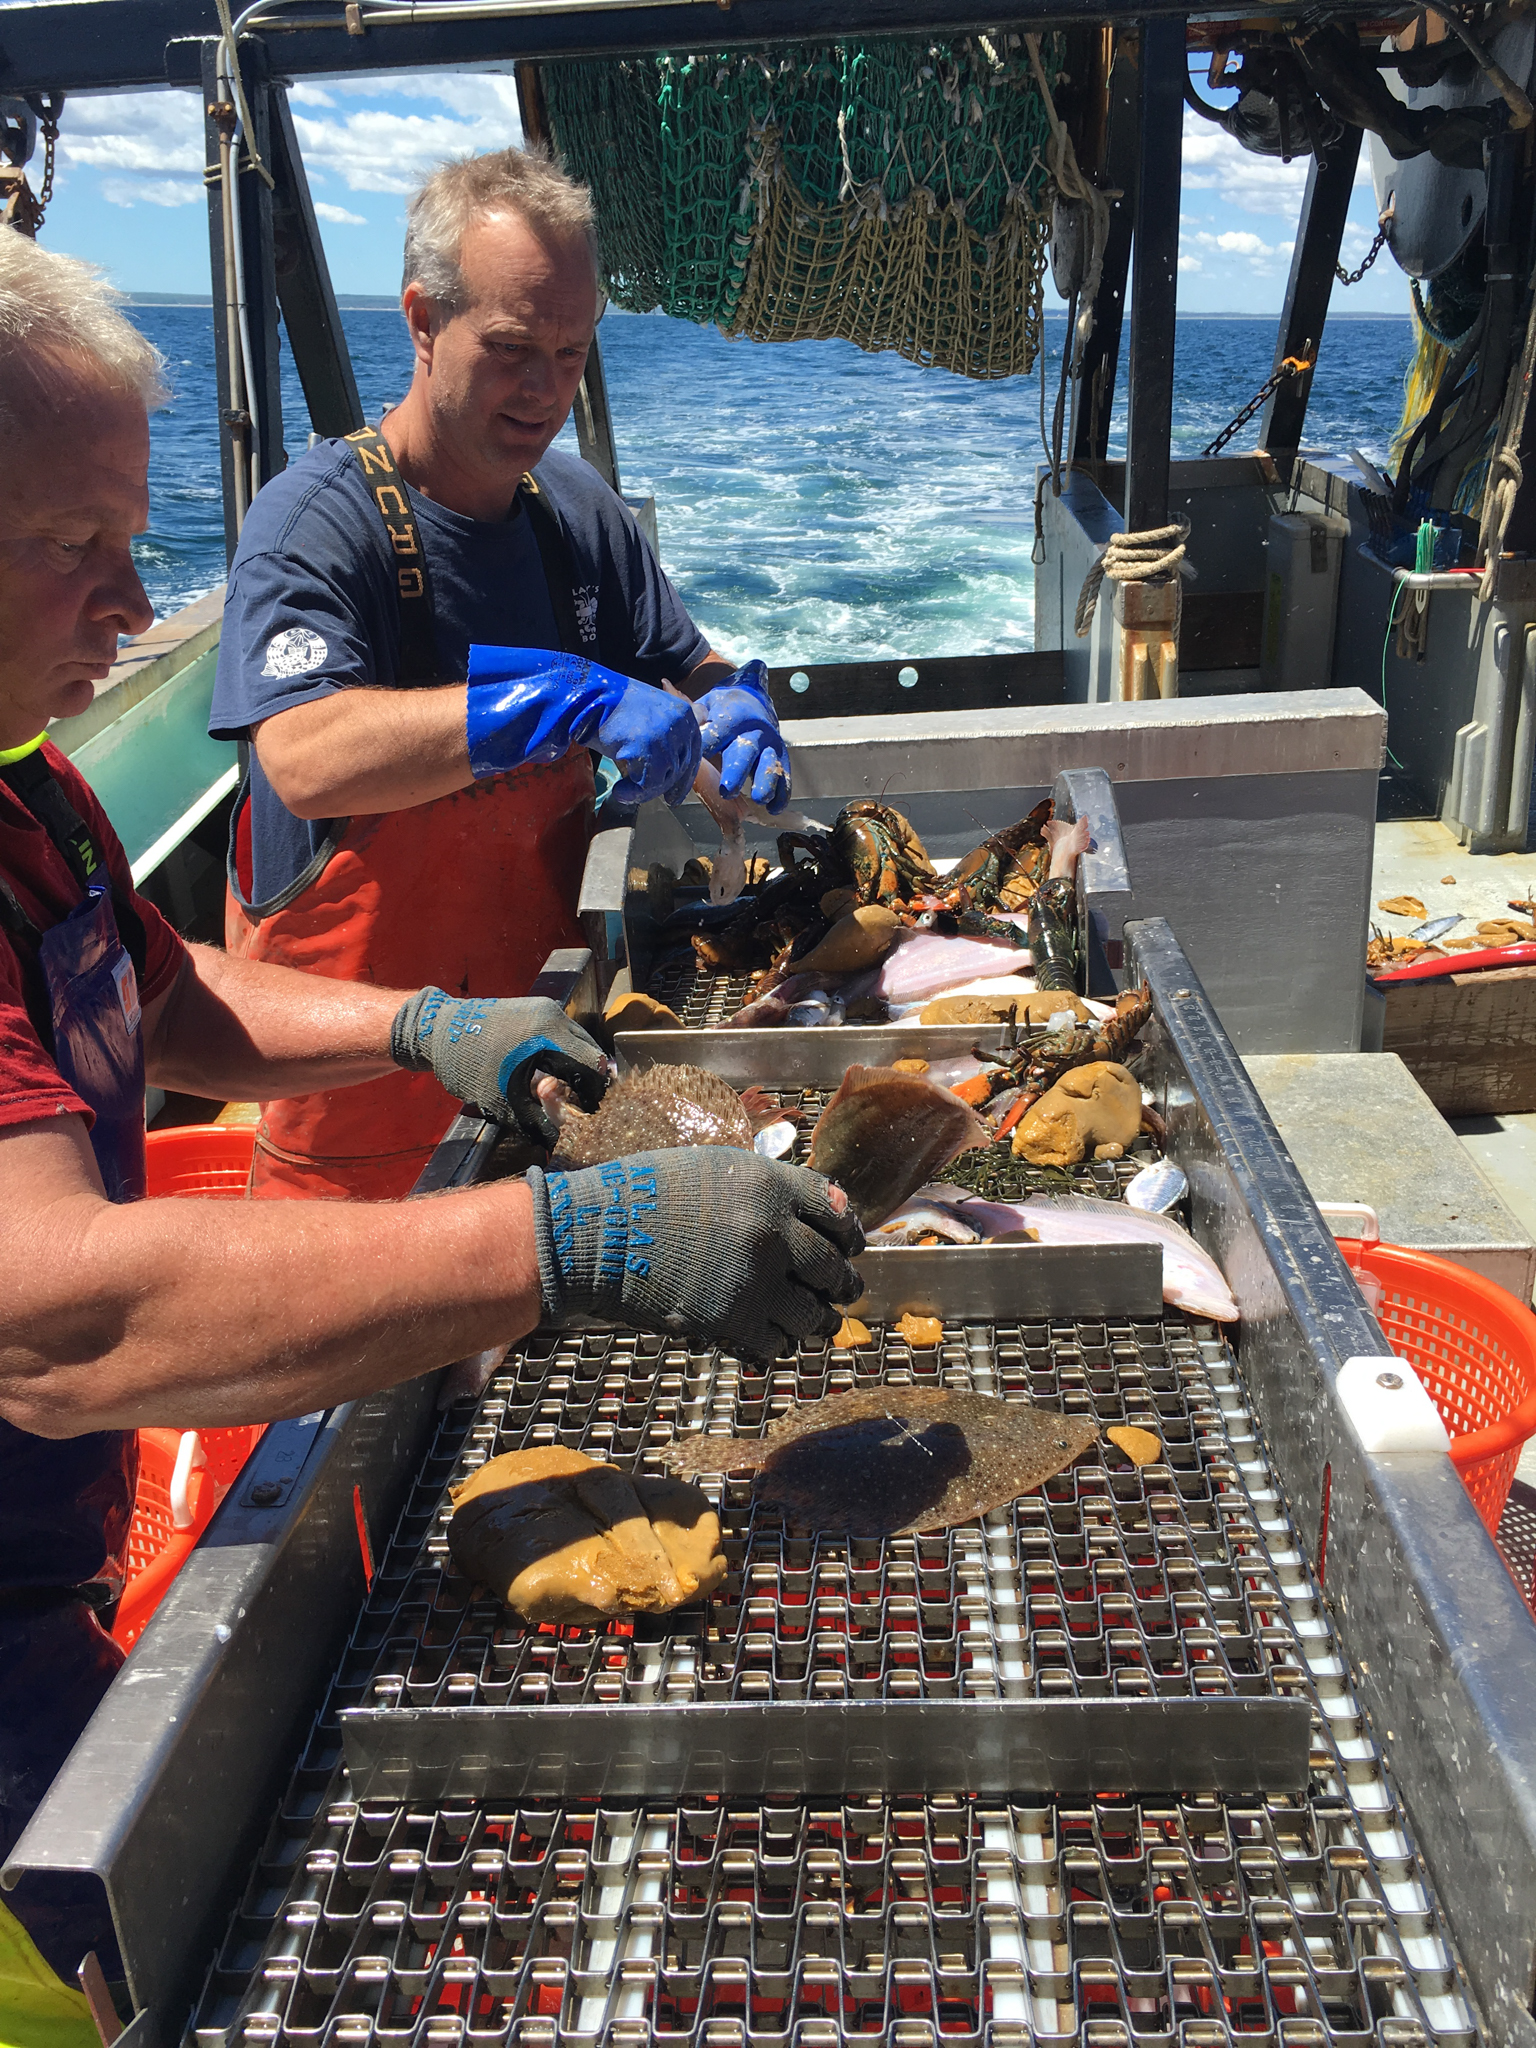 Bill Hoffman (right) and Paul Fitzgibbon sort the catch by species. Photo by Nicola Twilley